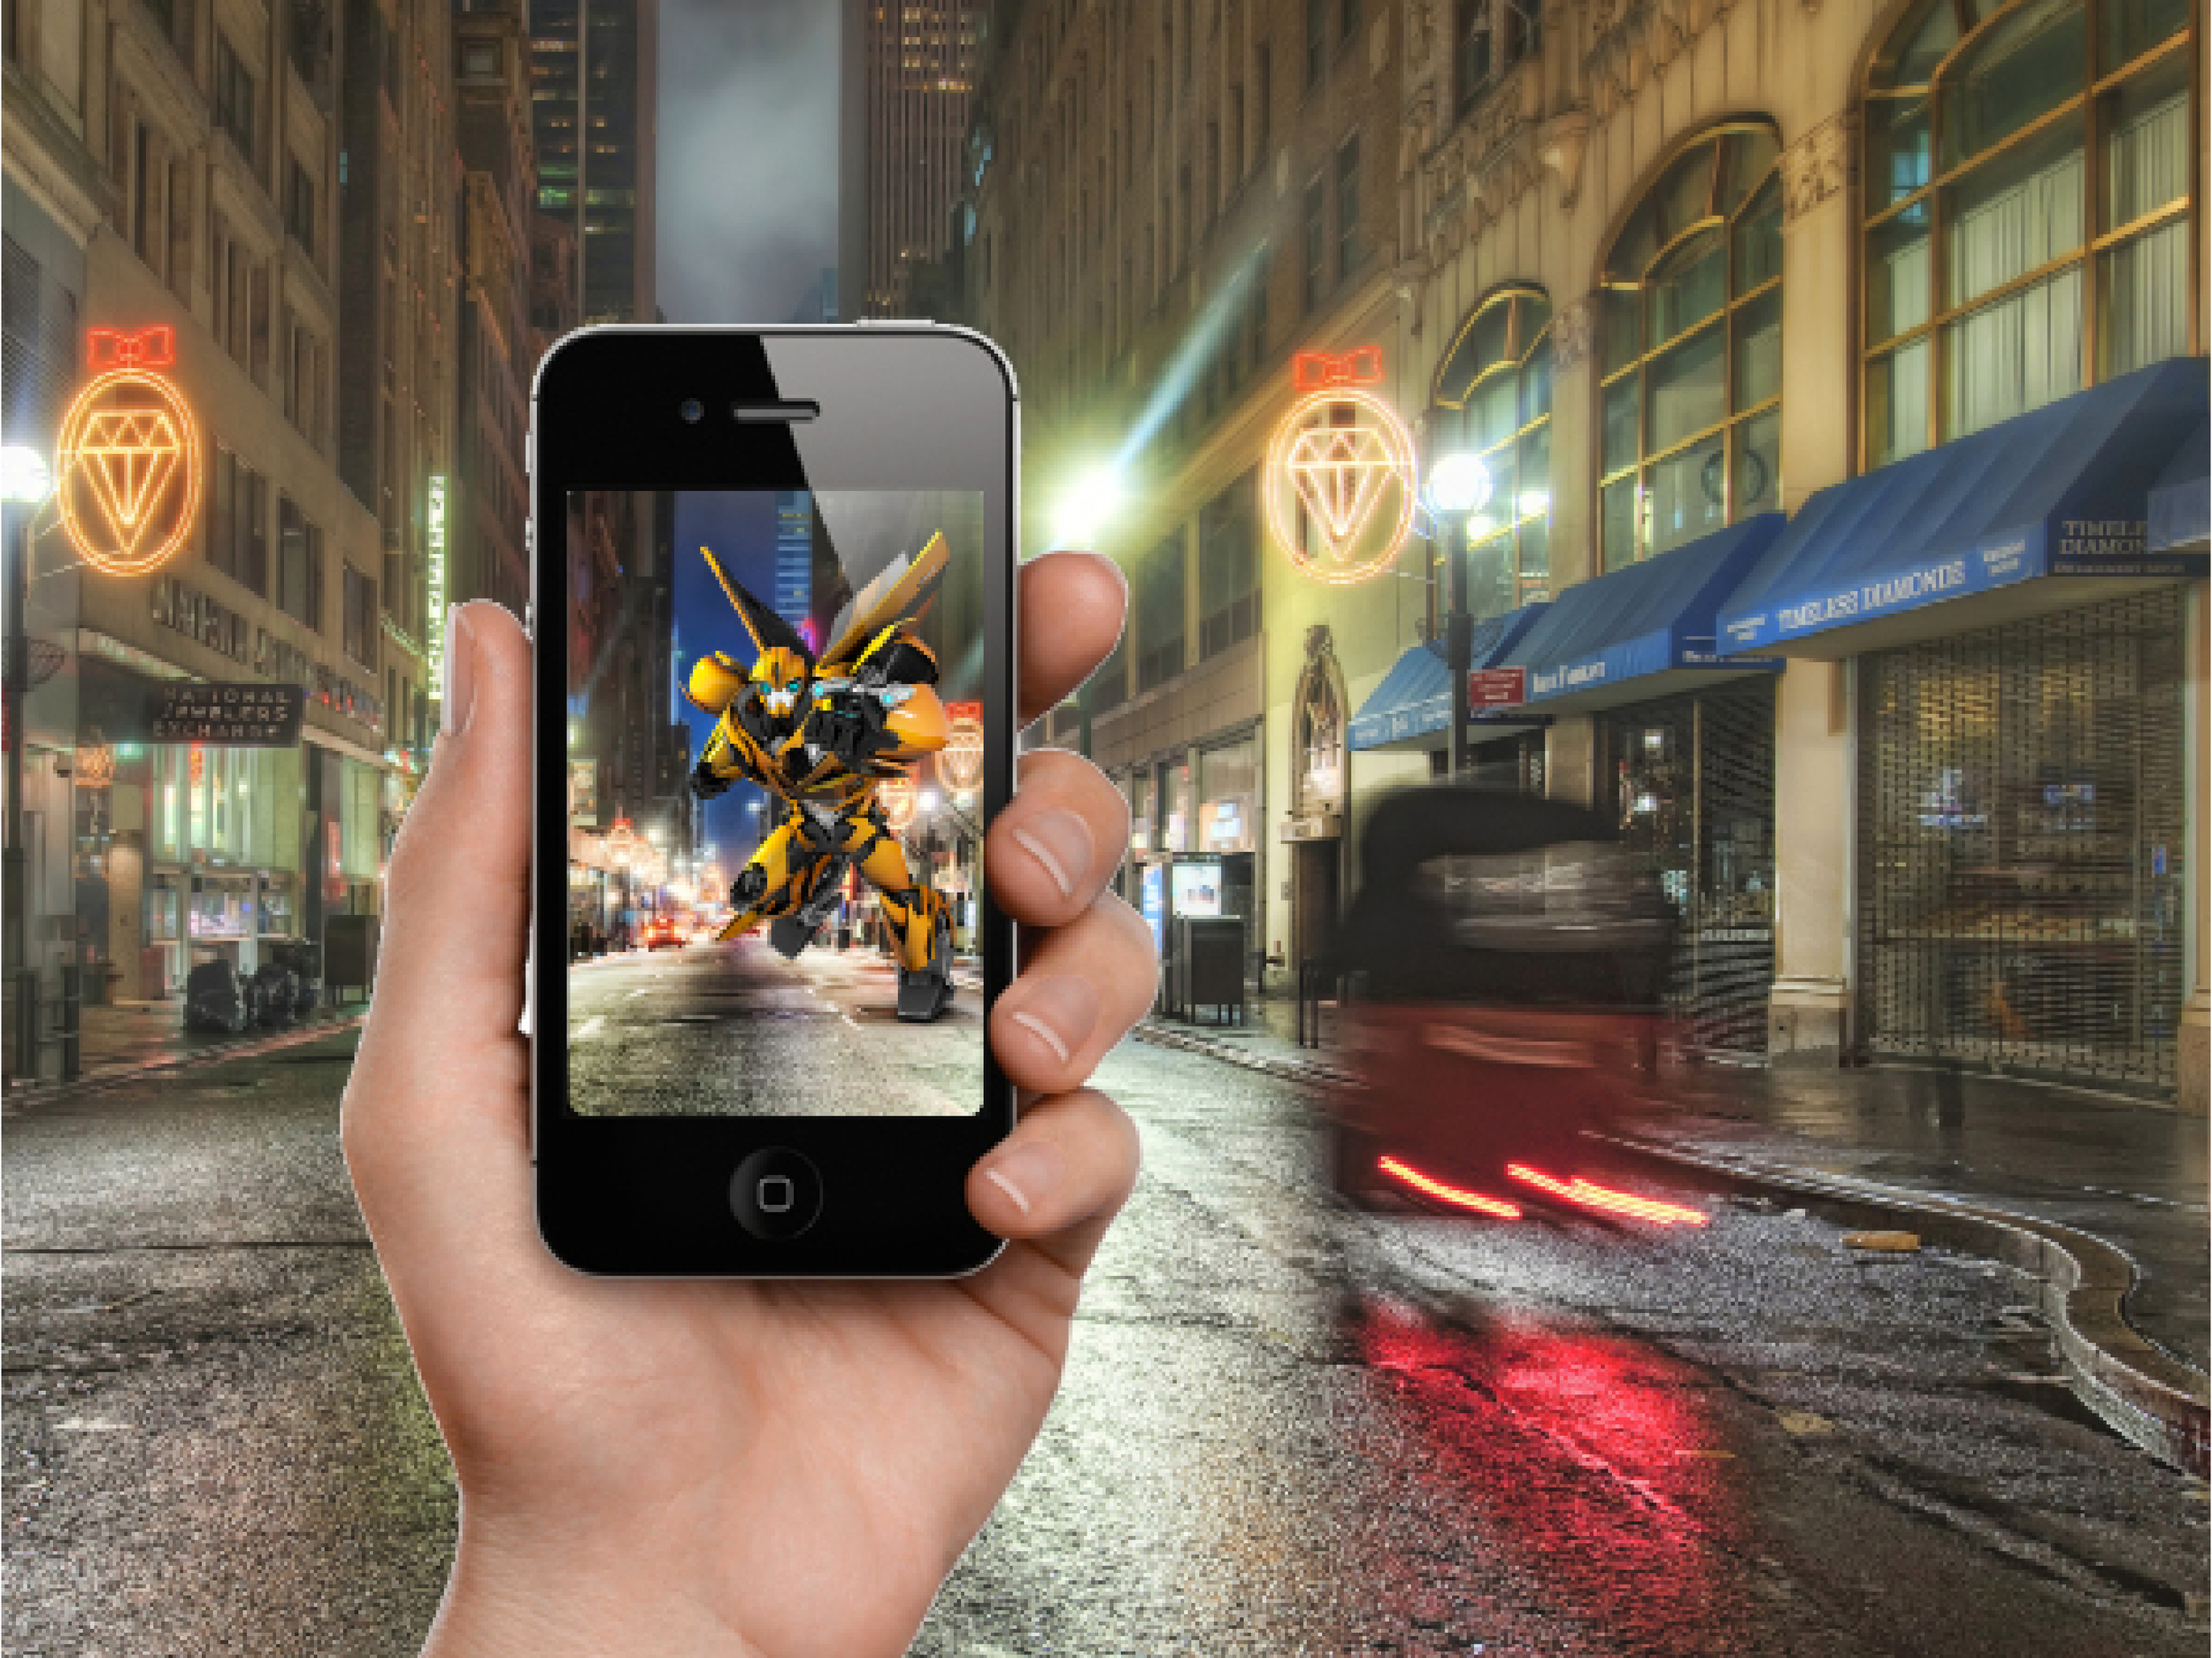 We used Mobile AR to allow kids to use their iPhone or iPad to take photos, record videos or just enjoy the view through their phone's screen — whi Hasbro Studio characters popping into the scene becoming part of their world. Videos can be shared and posted to social media sites.